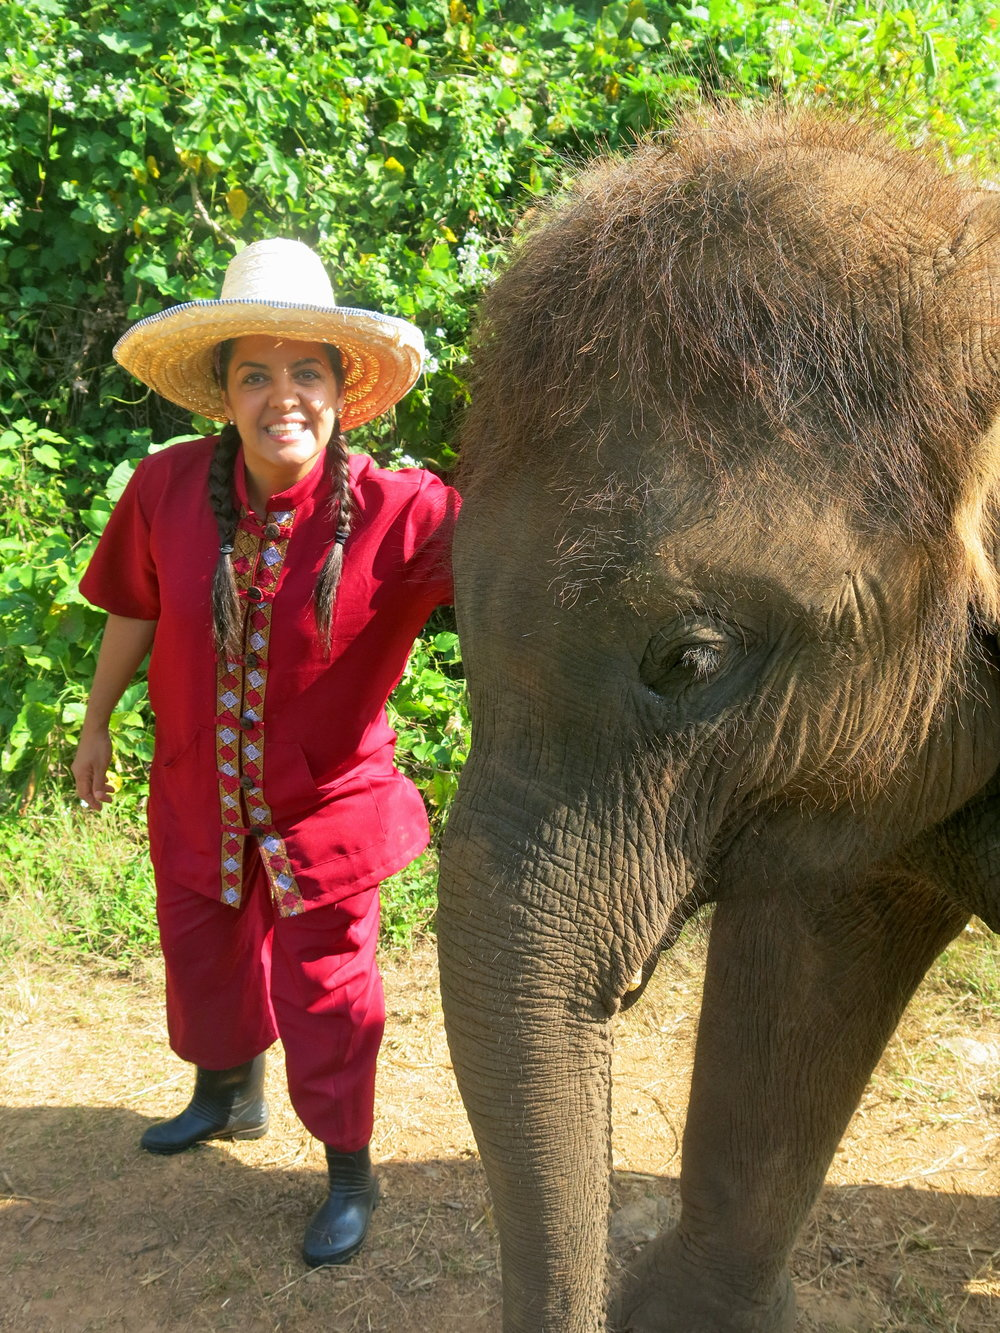 Private interaction with a baby elephant during a walk in the forest